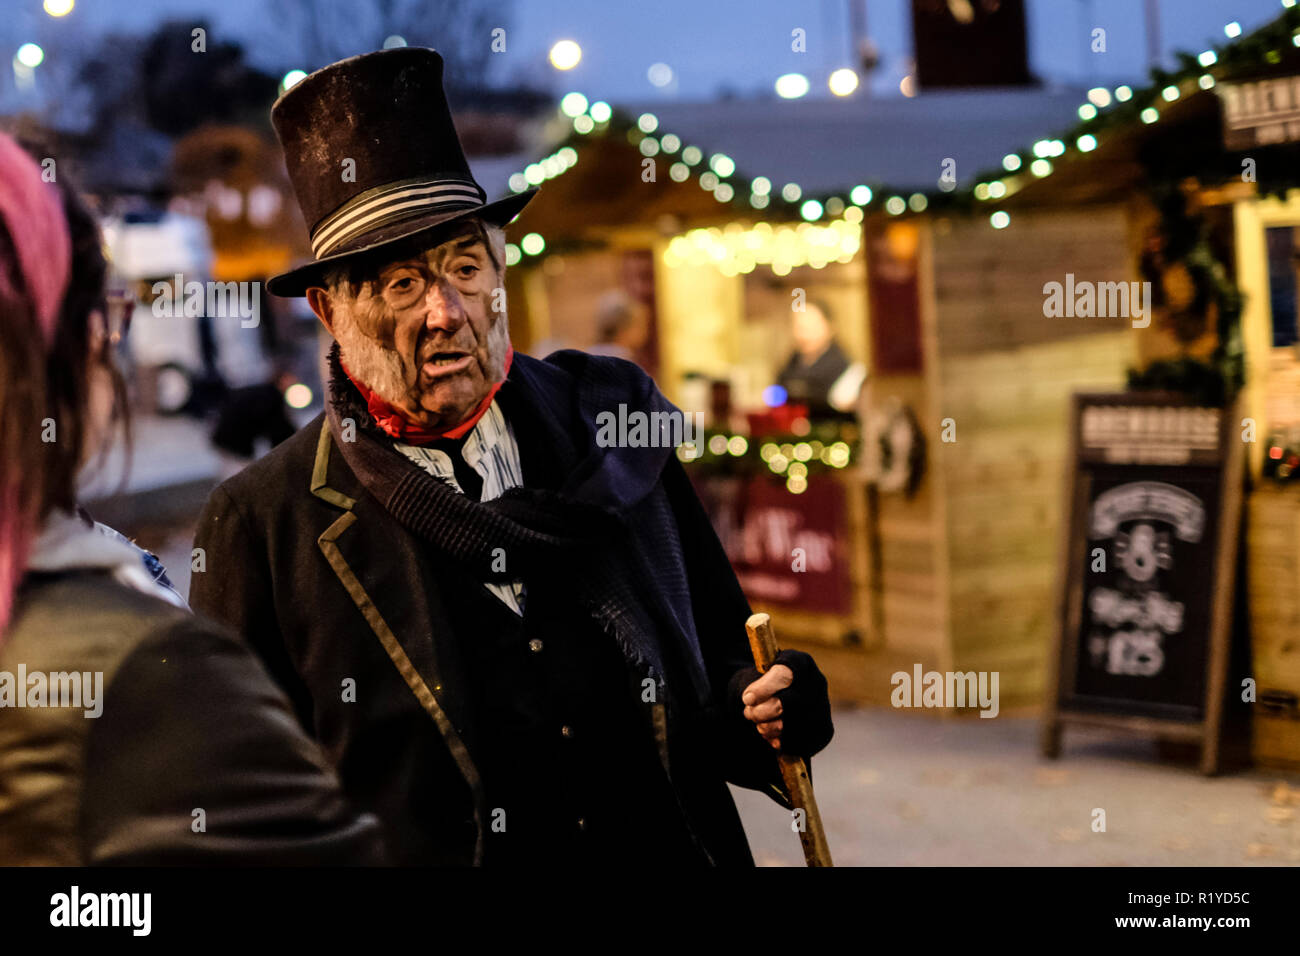 gloucester-uk-15th-nov-2018-gloucesters-historic-market-is-a-draw-for-visitors-and-locals-stall-holders-dress-up-in-victorian-costume-to-provide-a-period-atmosphere-mr-burroughs-the-sweep-offers-good-luck-for-a-handshake-and-explains-the-life-of-a-child-chimmney-sweep-credit-mr-standfastalamy-live-news-R1YD5C.jpg